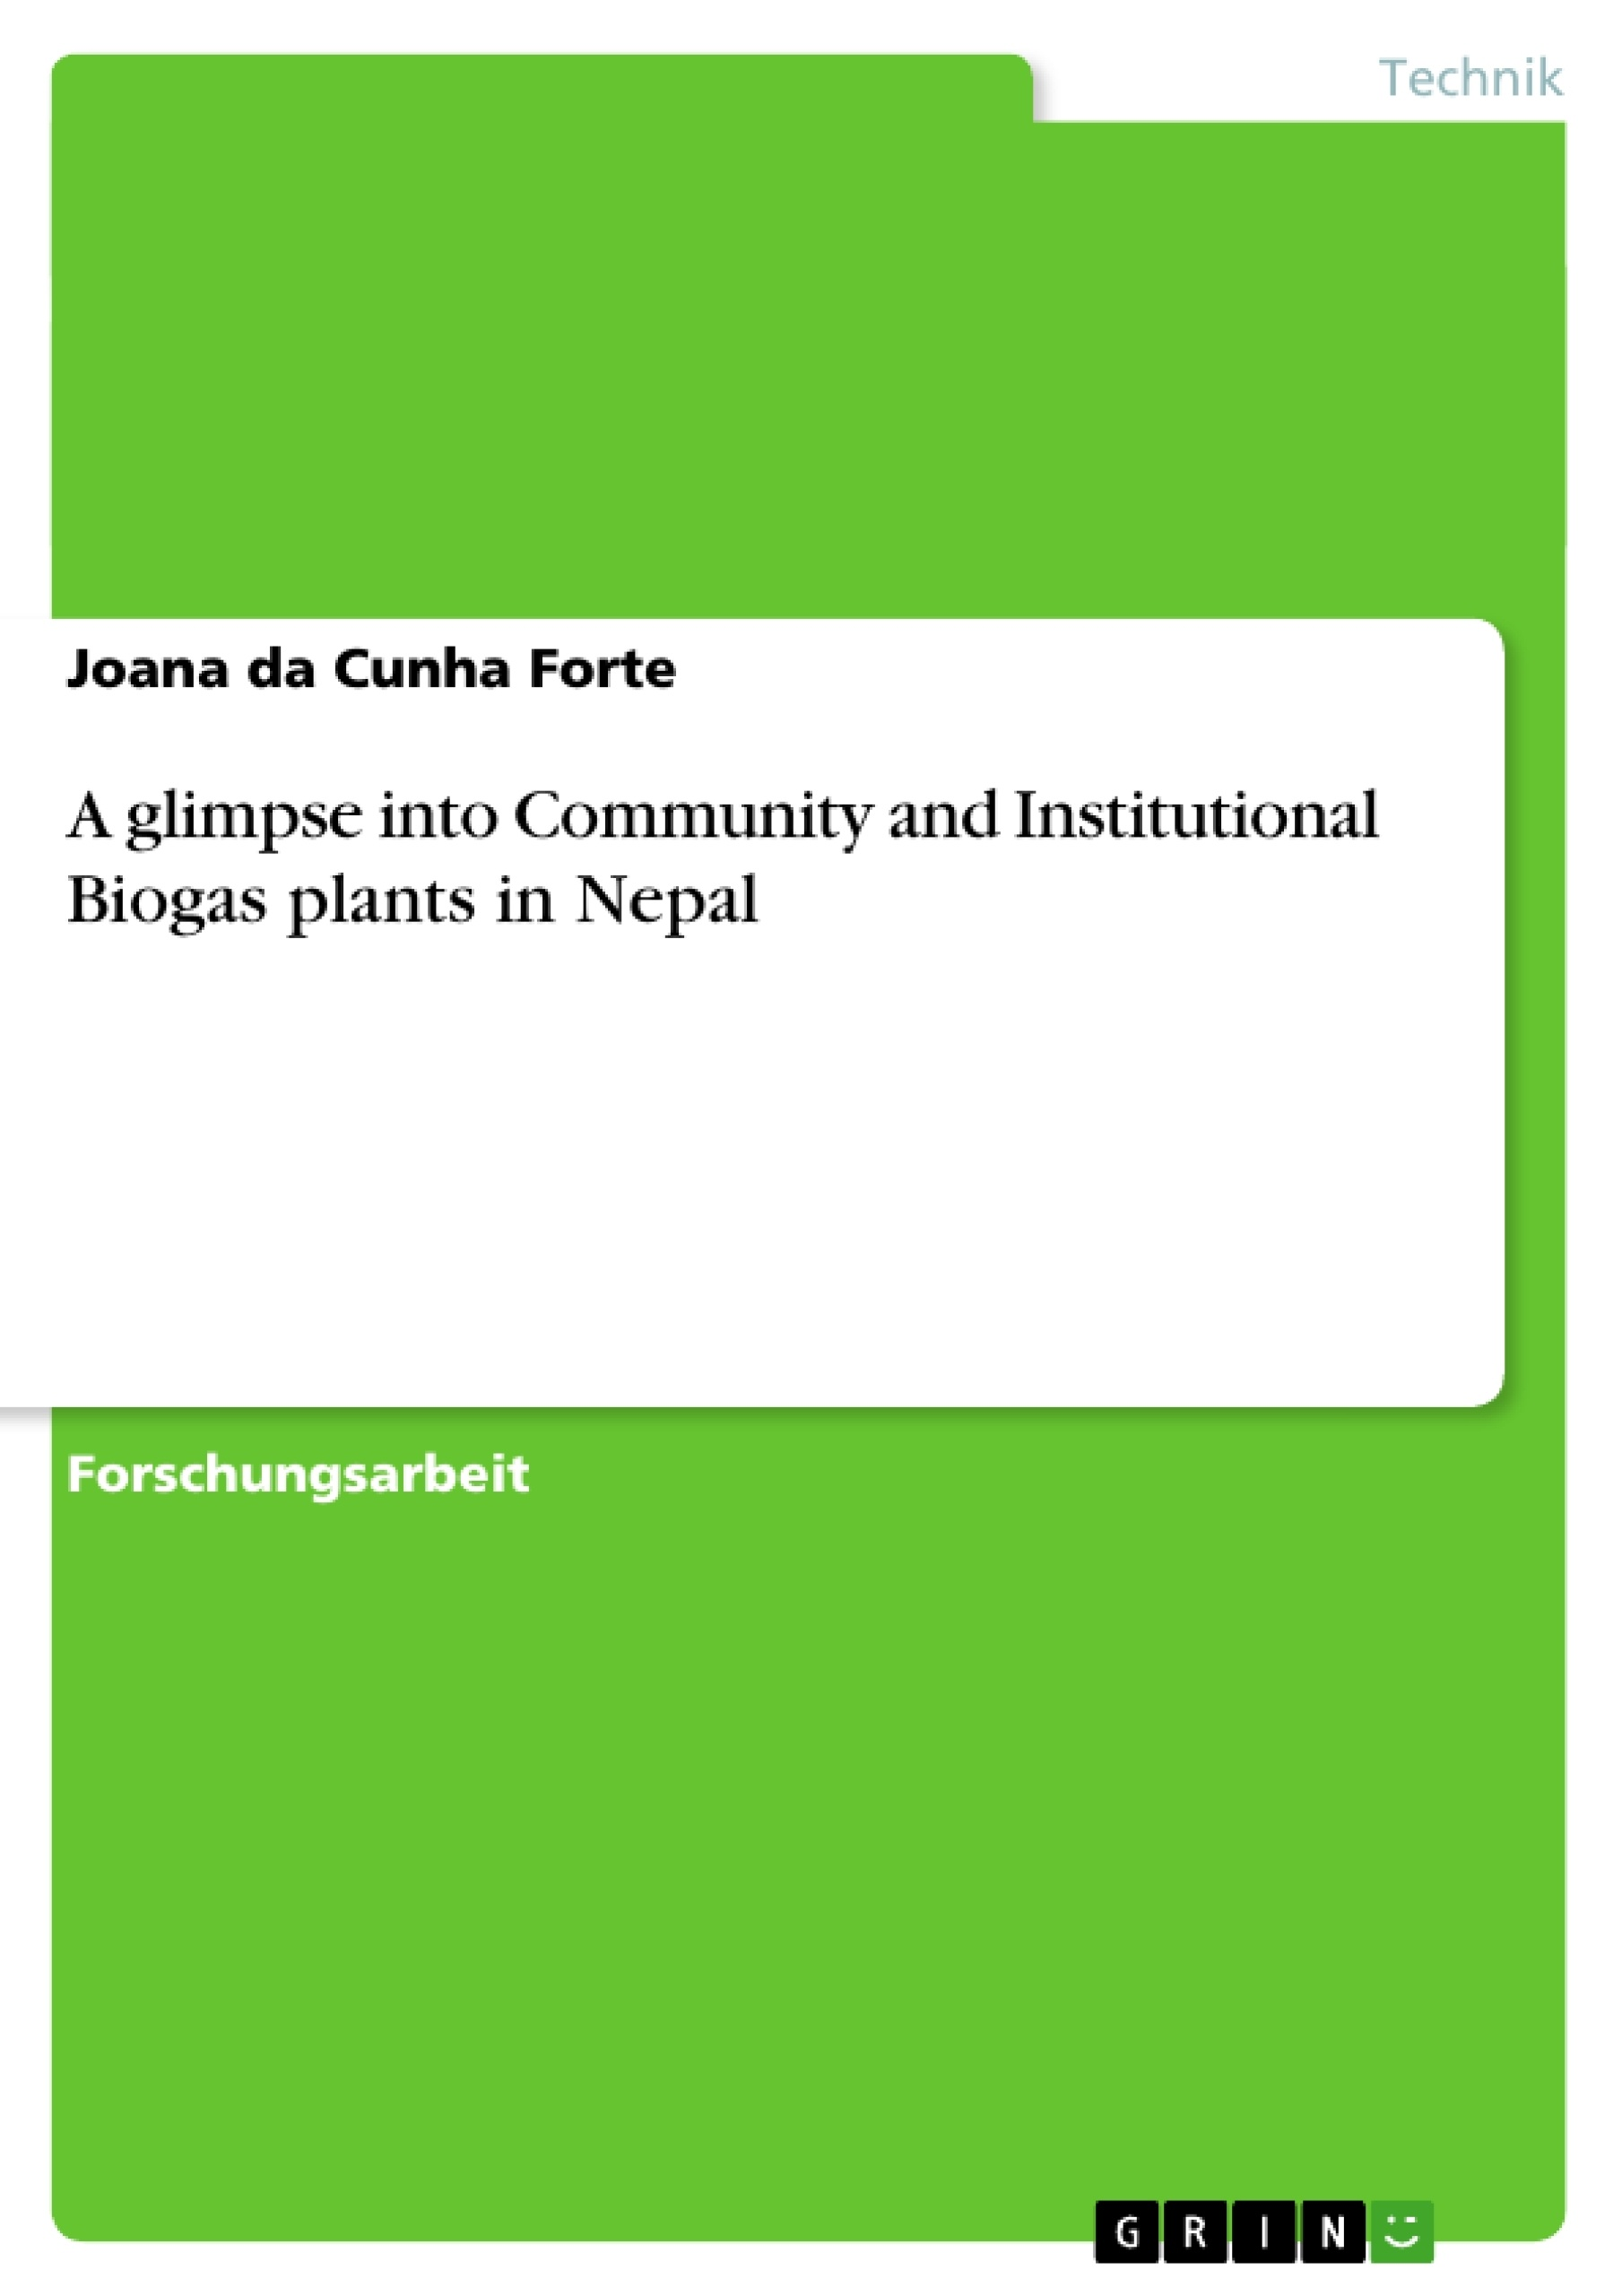 Titel: A glimpse into Community and Institutional Biogas plants in Nepal